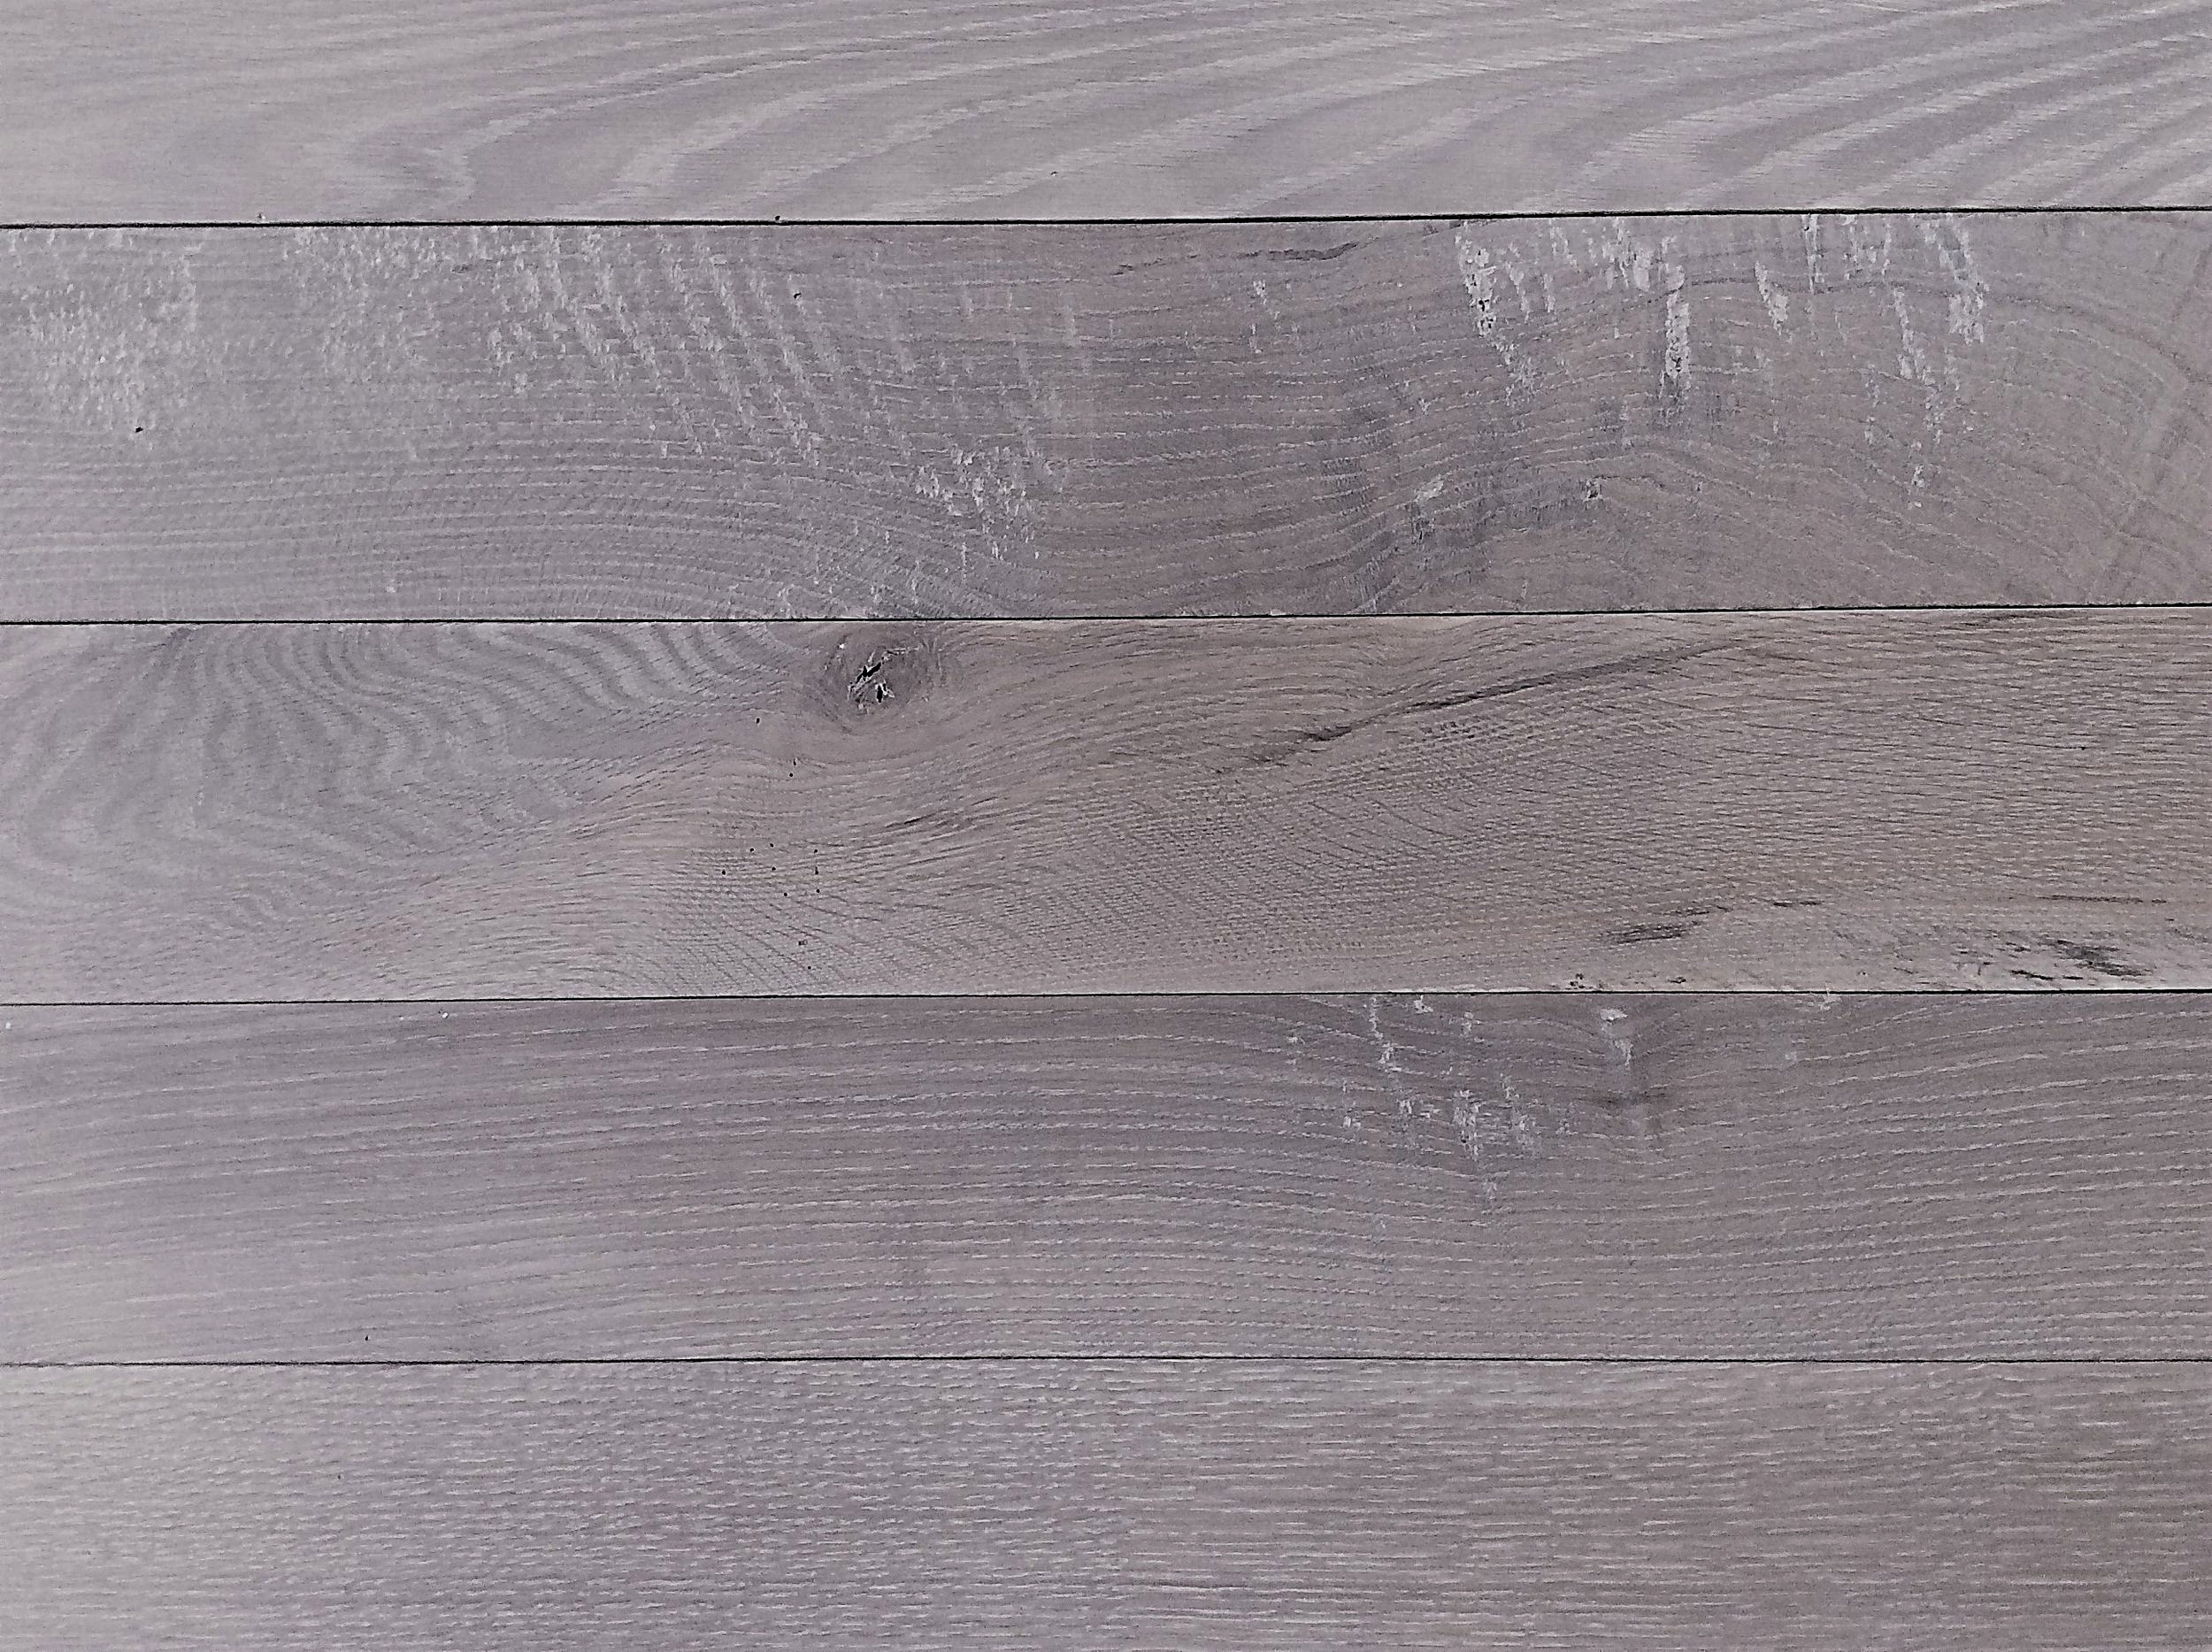 Heirloom Design Build Eutree Forest Free Weathered Wood Wall Paneling Feature Accent Wall